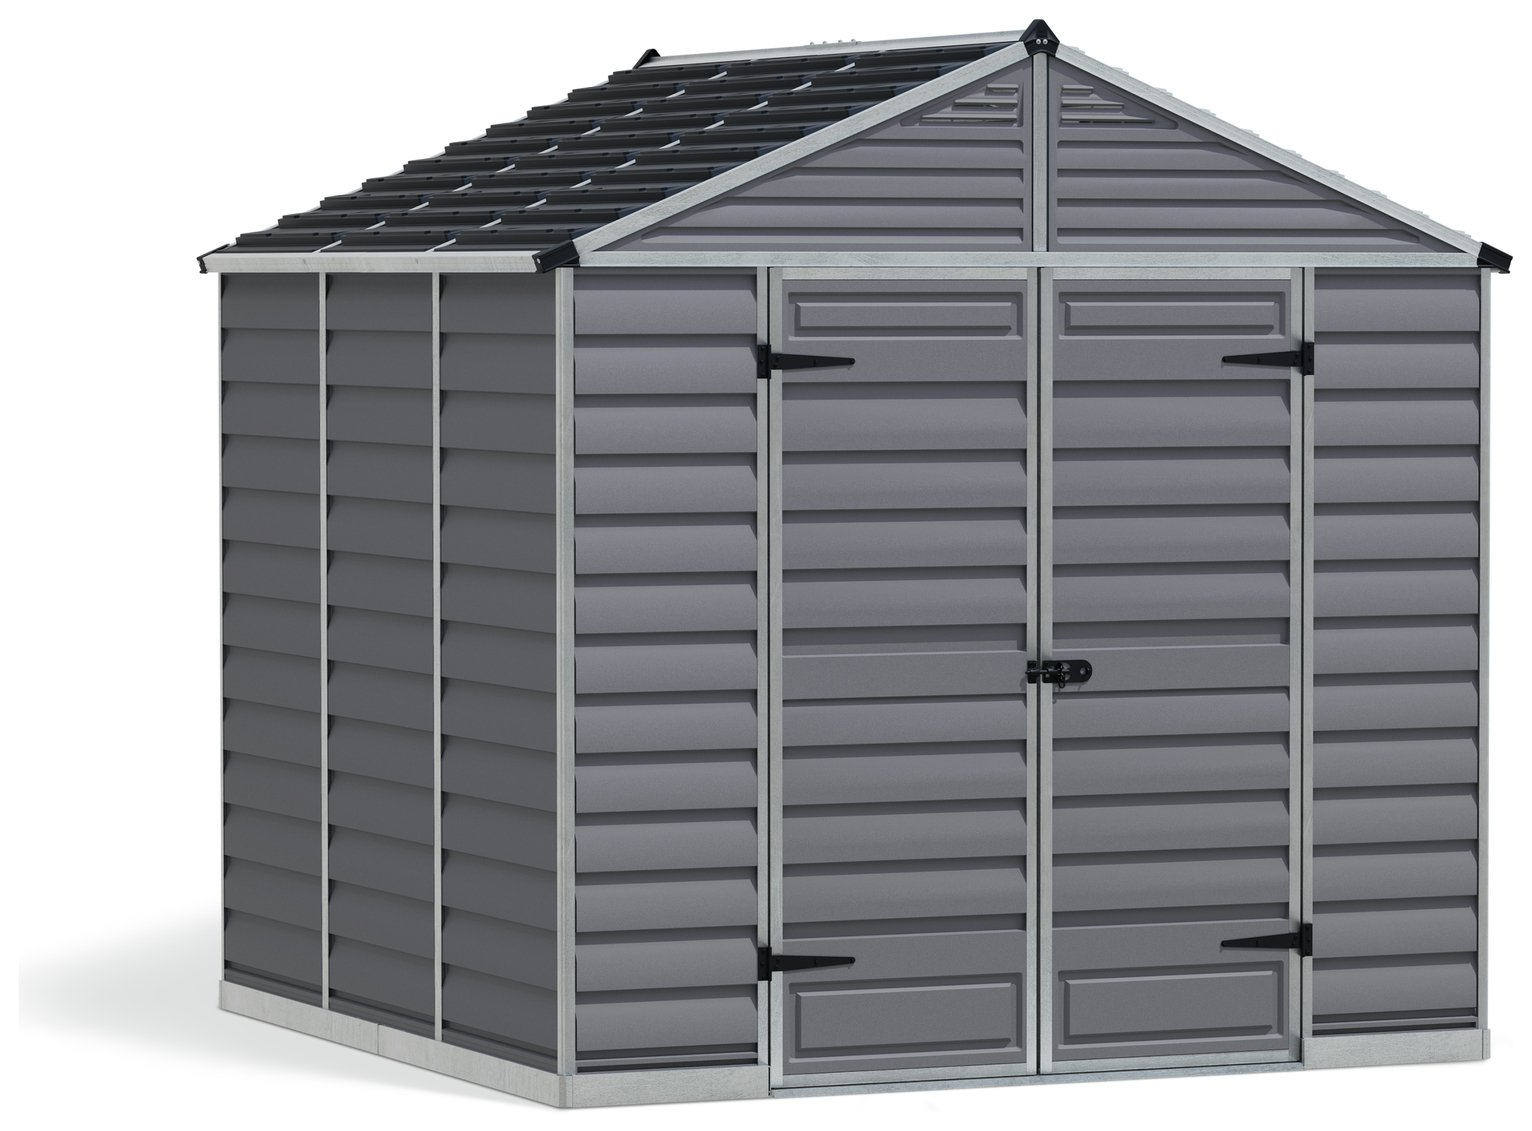 Palram Skylight Plastic 8 x 8ft Shed review